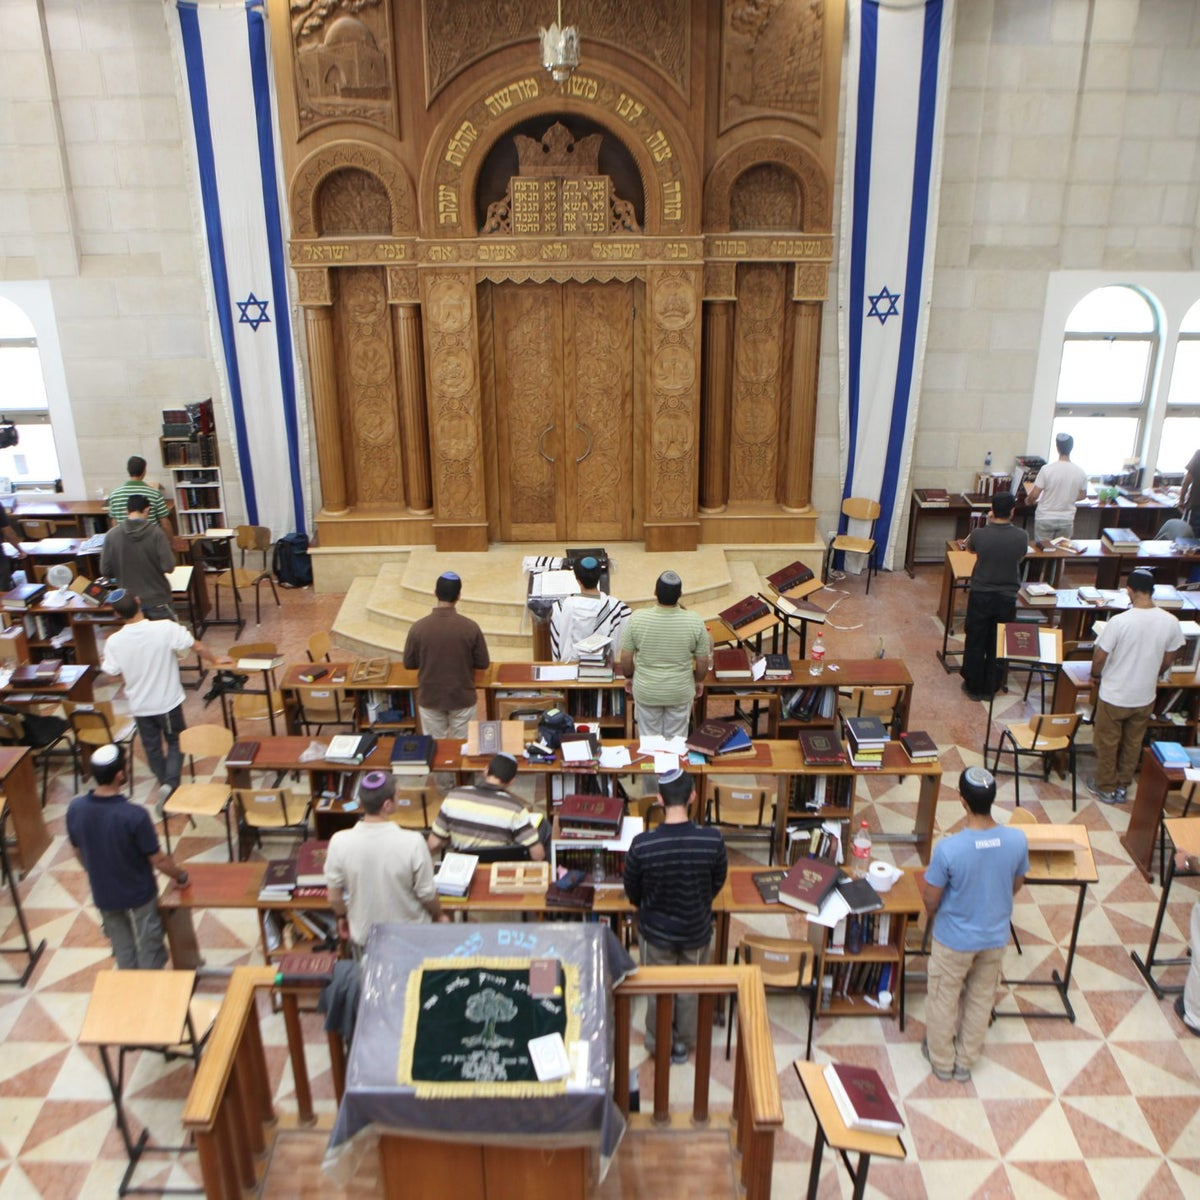 Students praying at the Shavei Hevron yeshiva in Kiryat Arba in 2011.